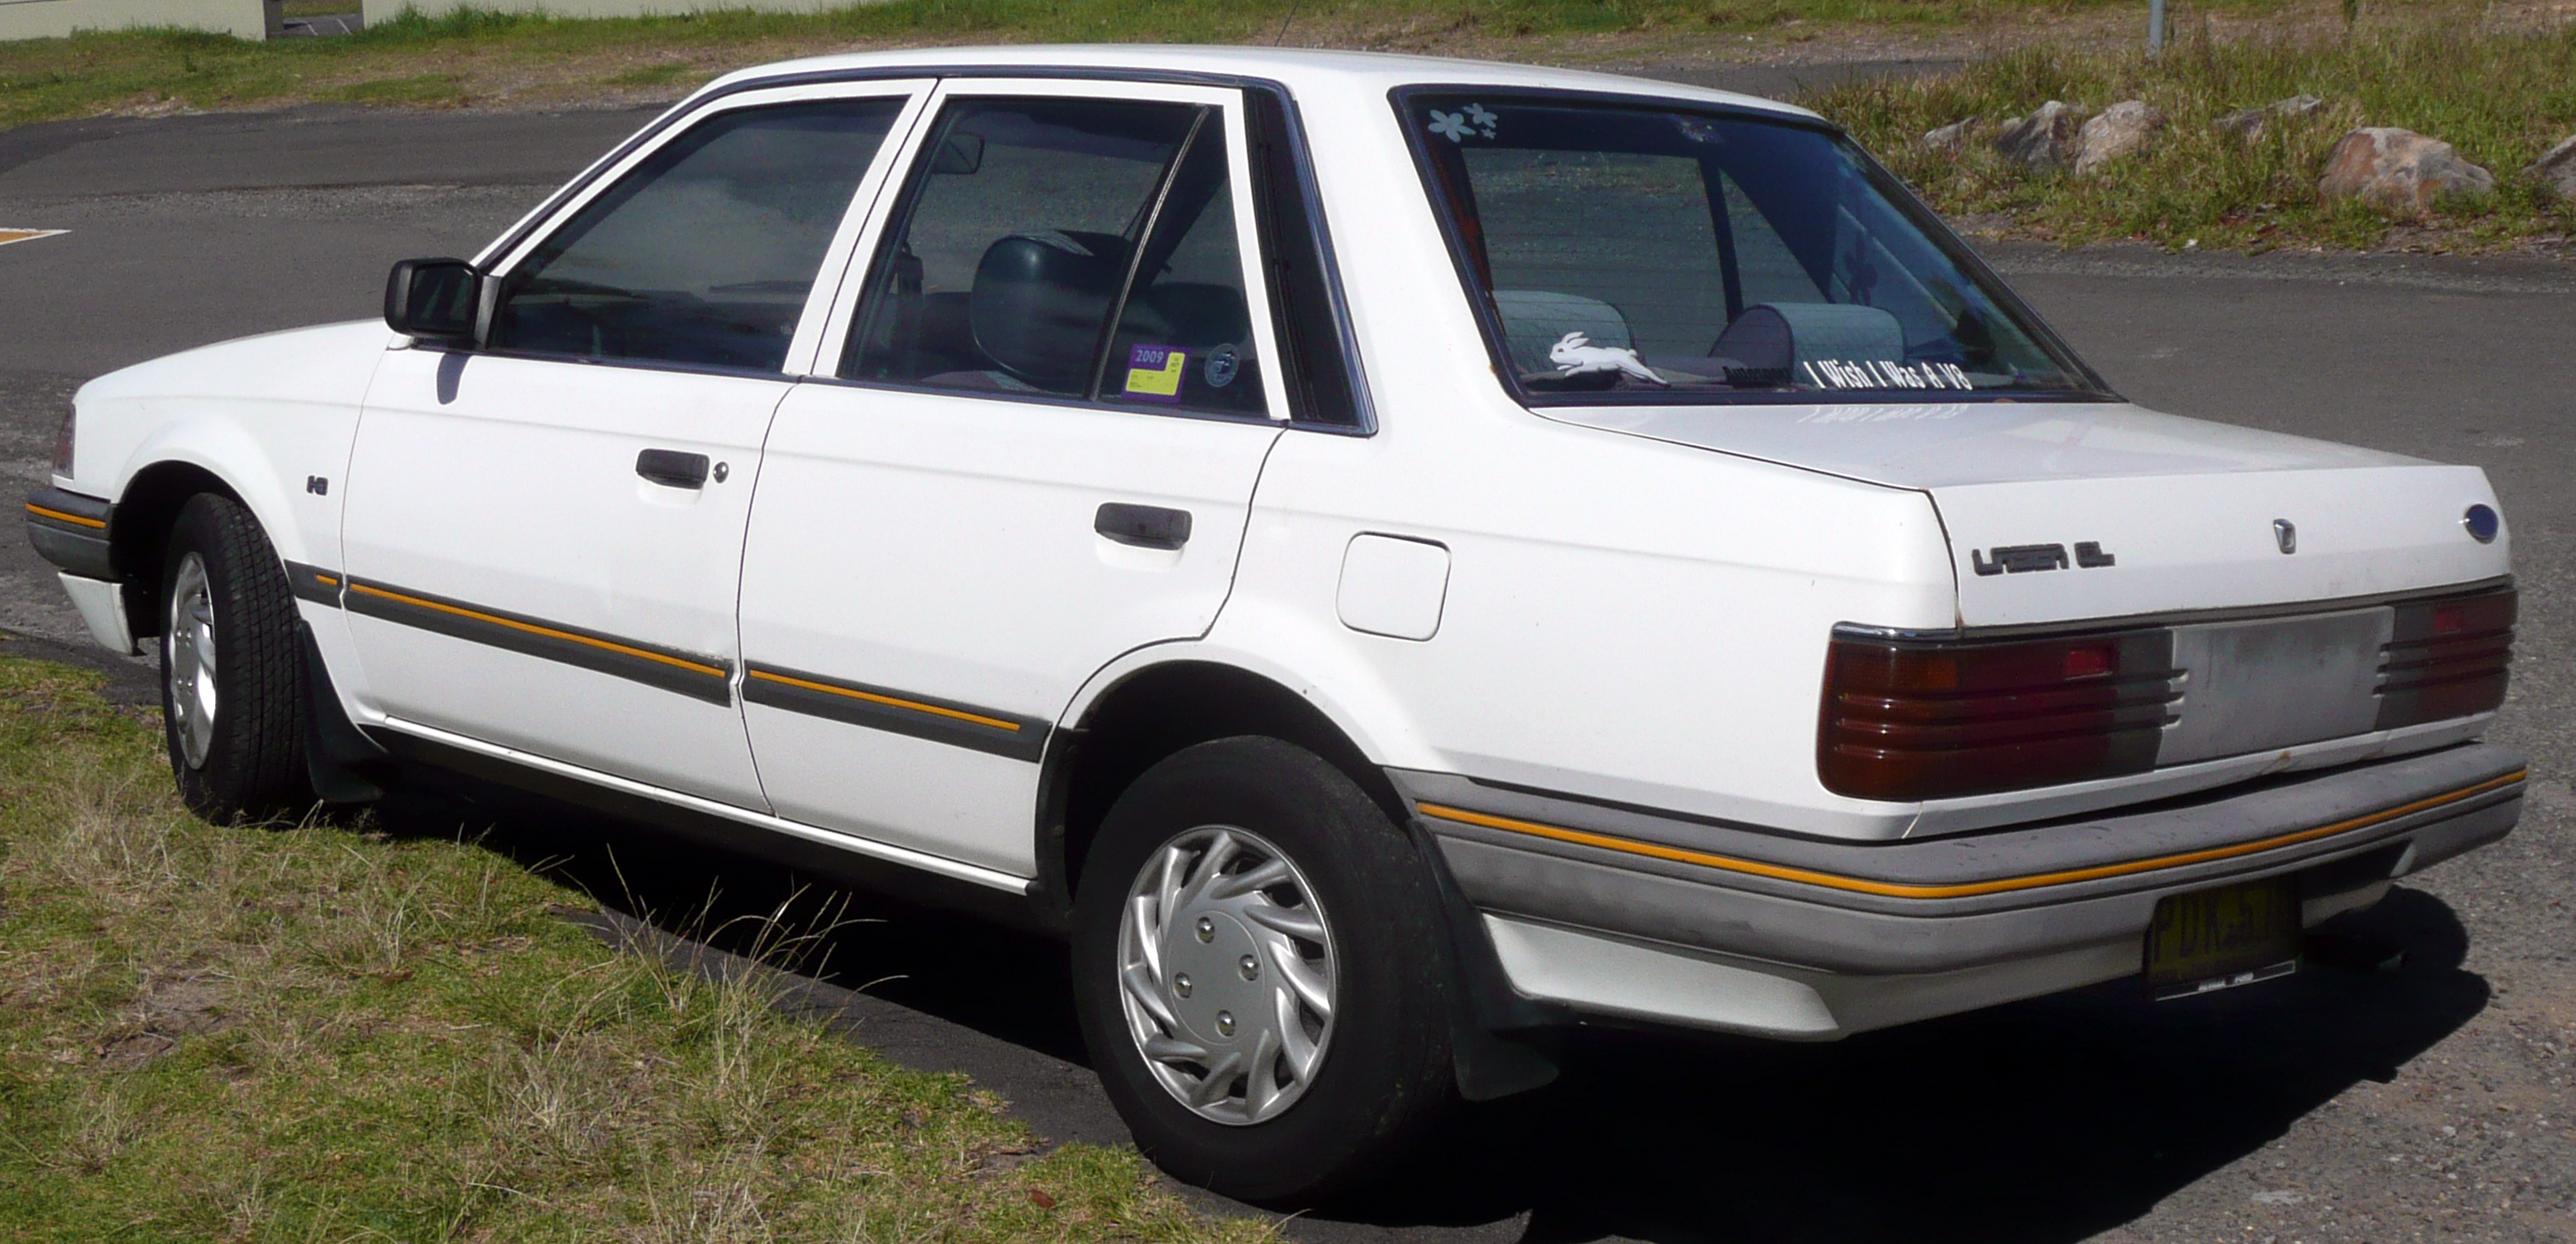 1988 Ford Meteor #1